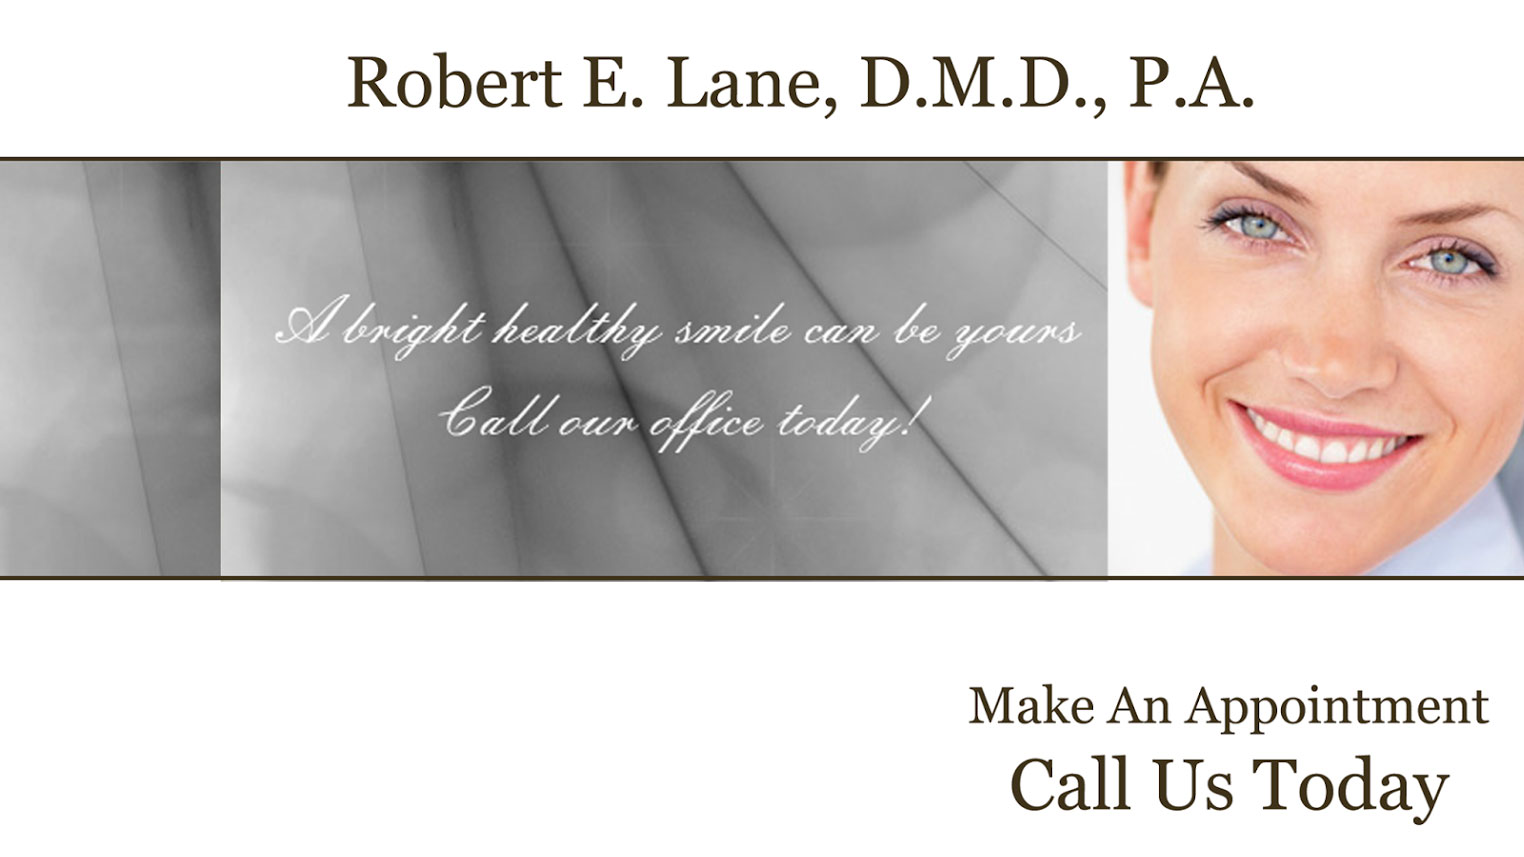 Robert E. Lane D.M.D. reviews | 1590 NW 10th Ave - Boca Raton FL